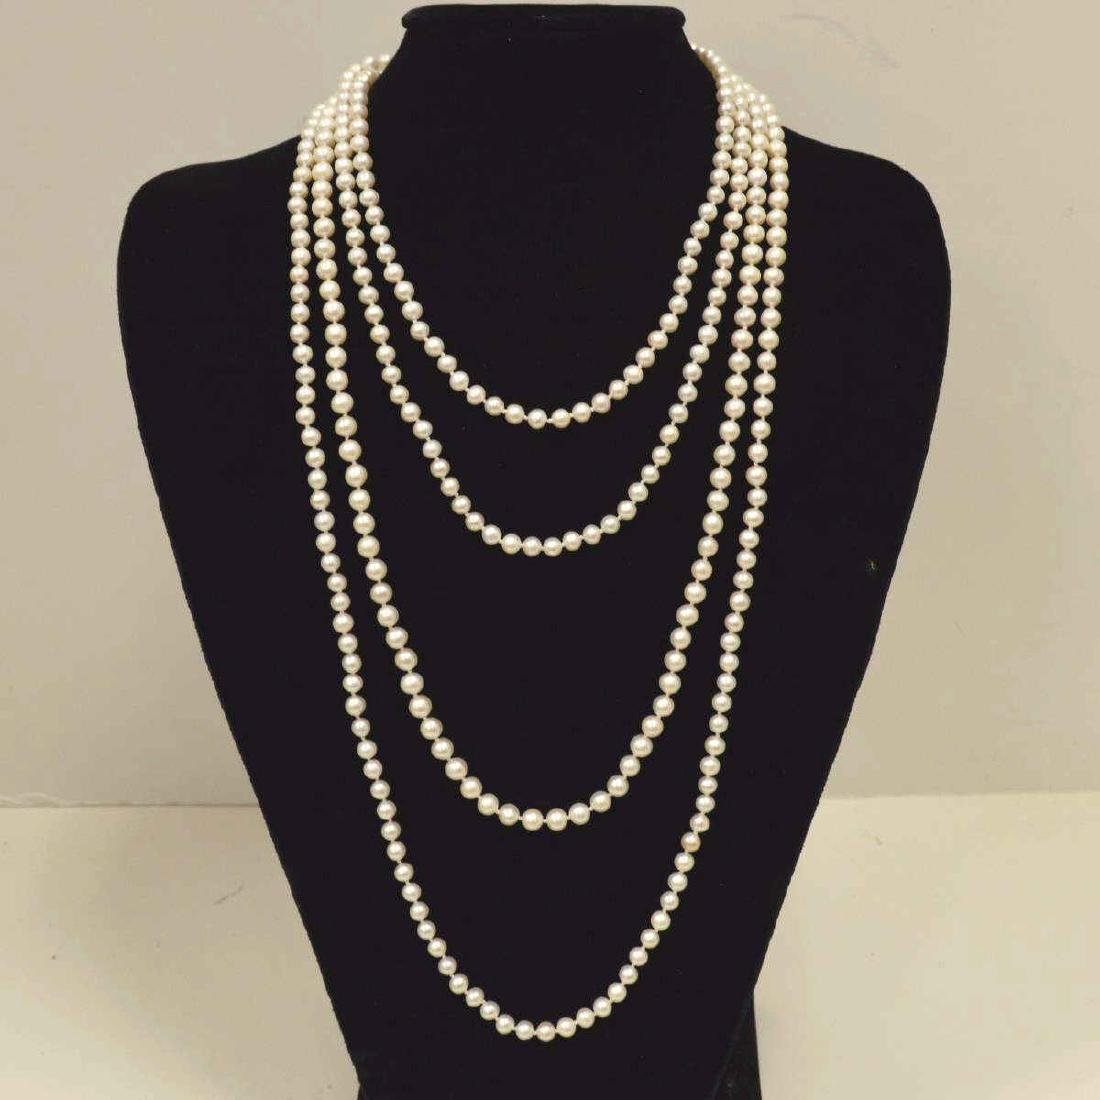 "96"" continuous strand of freshwater pearls"